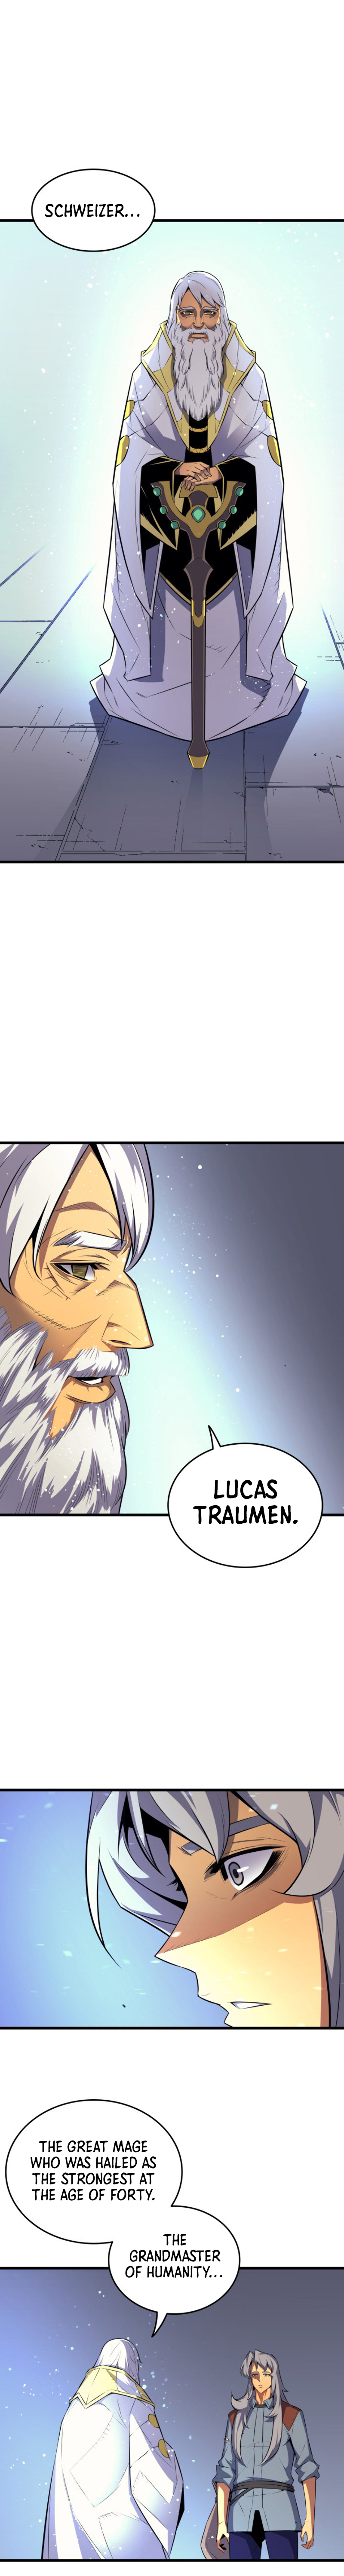 The Great Mage Returns After 4000 Years - chapter 34-eng-li